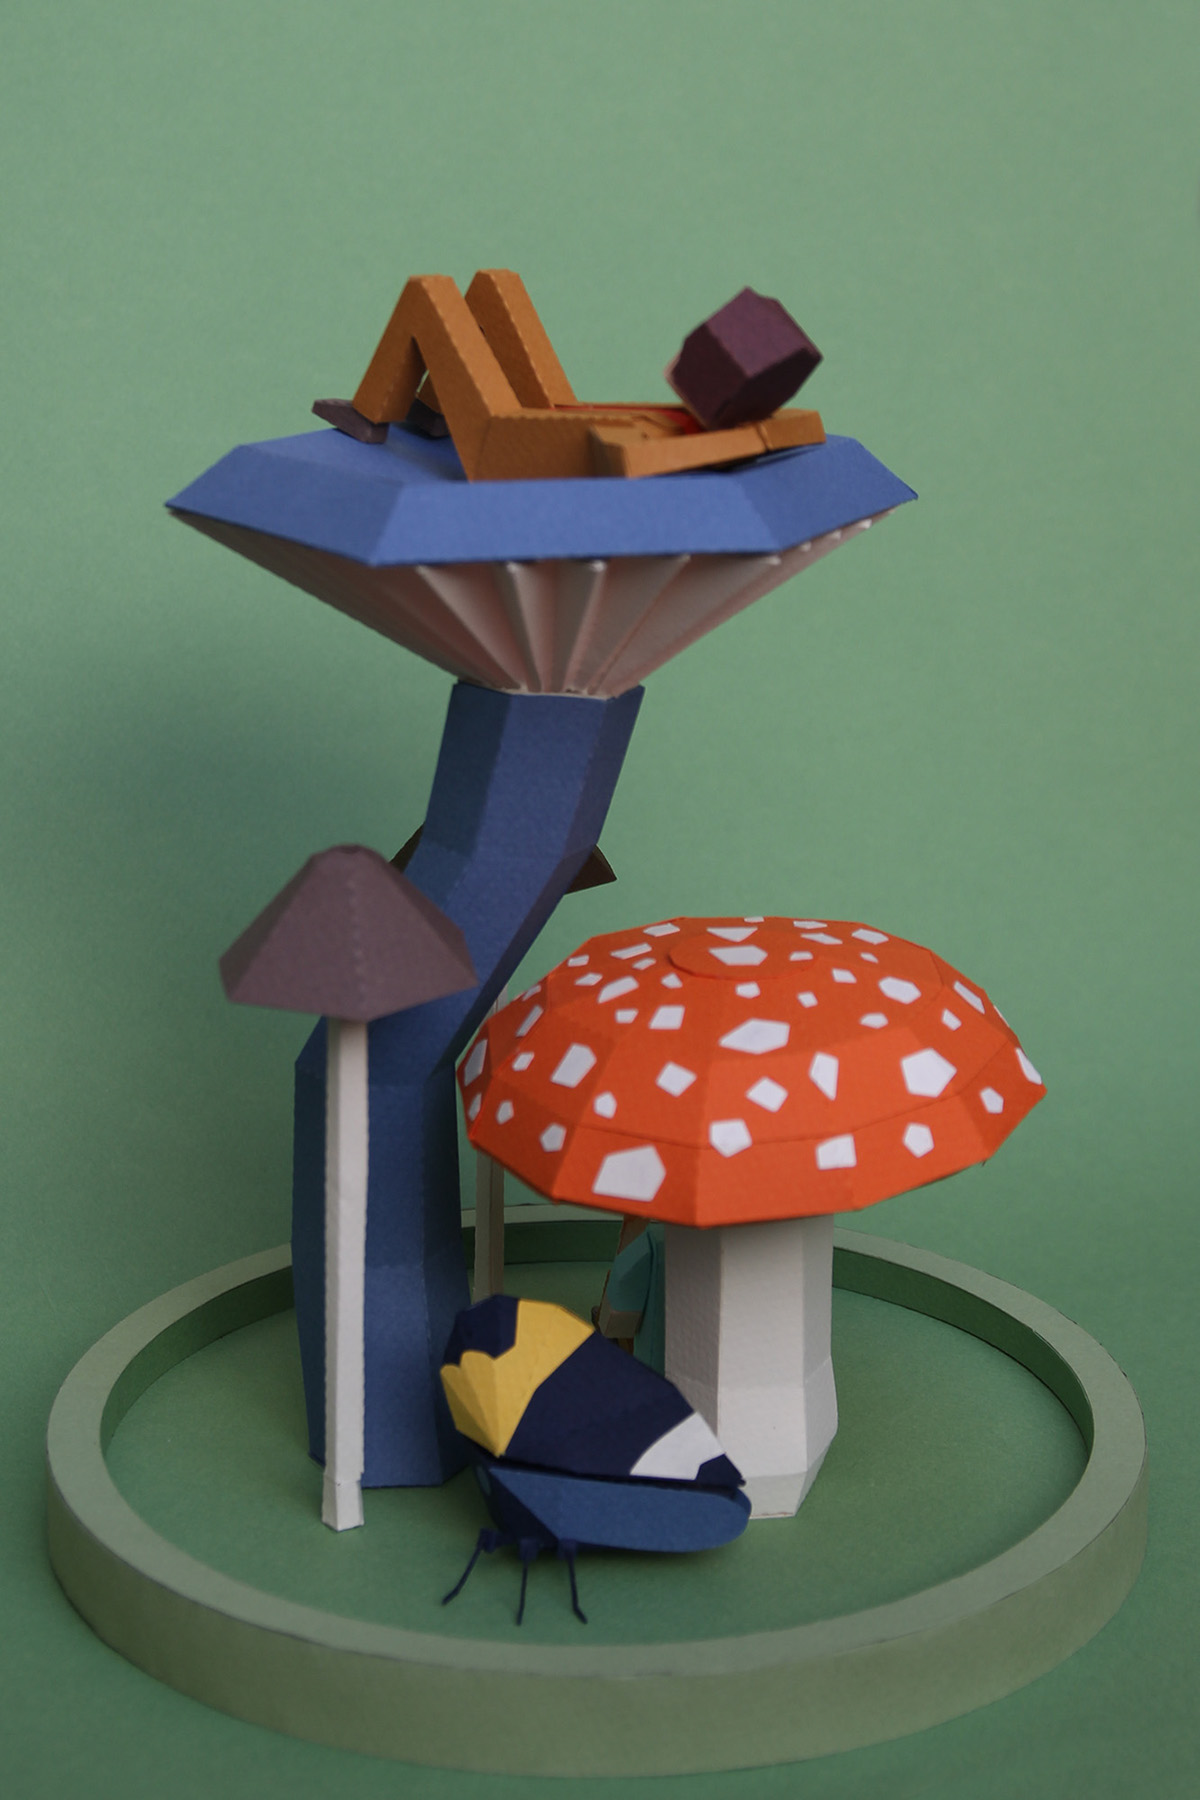 papercraft,lowpoly,david attenborough,carl sagan,audubon,grizzly man,Fungi,Exhibition ,Home Hotel,Diorama